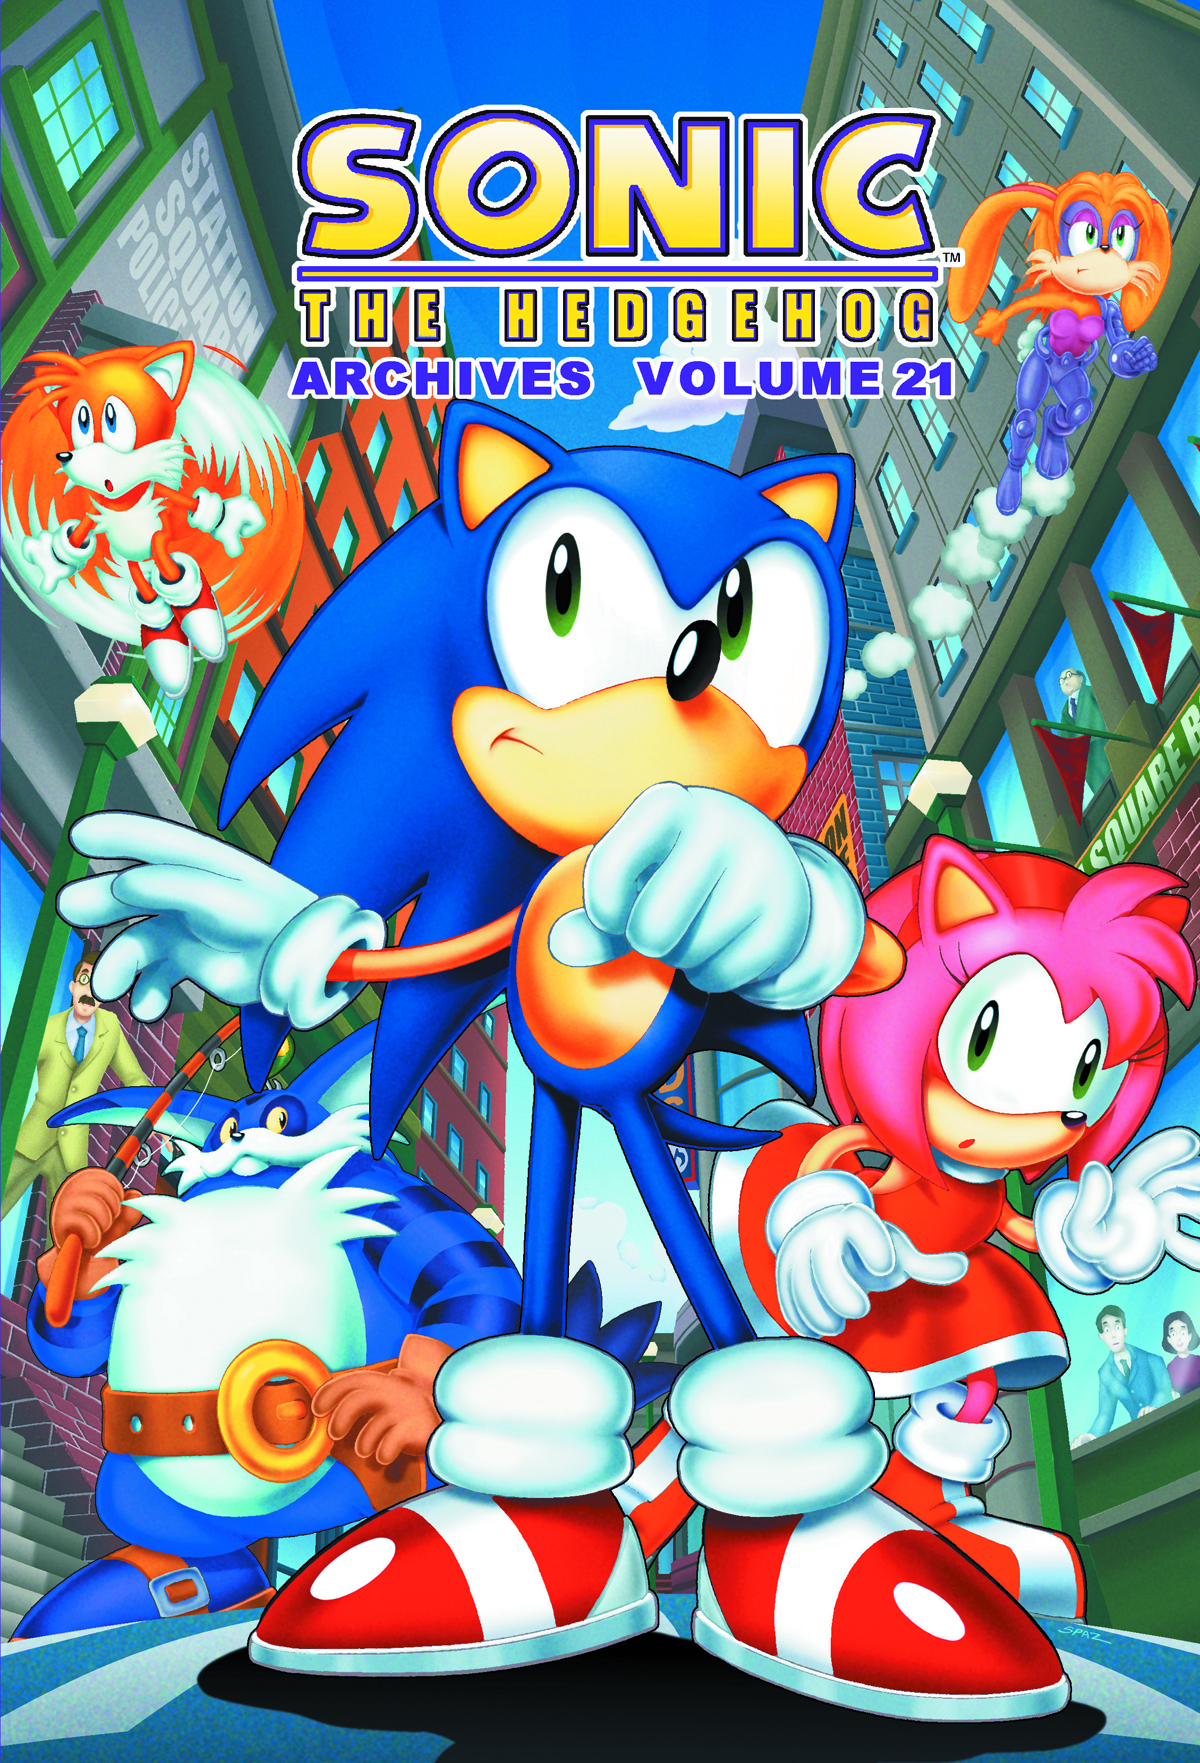 SONIC THE HEDGEHOG ARCHIVES TP VOL 21